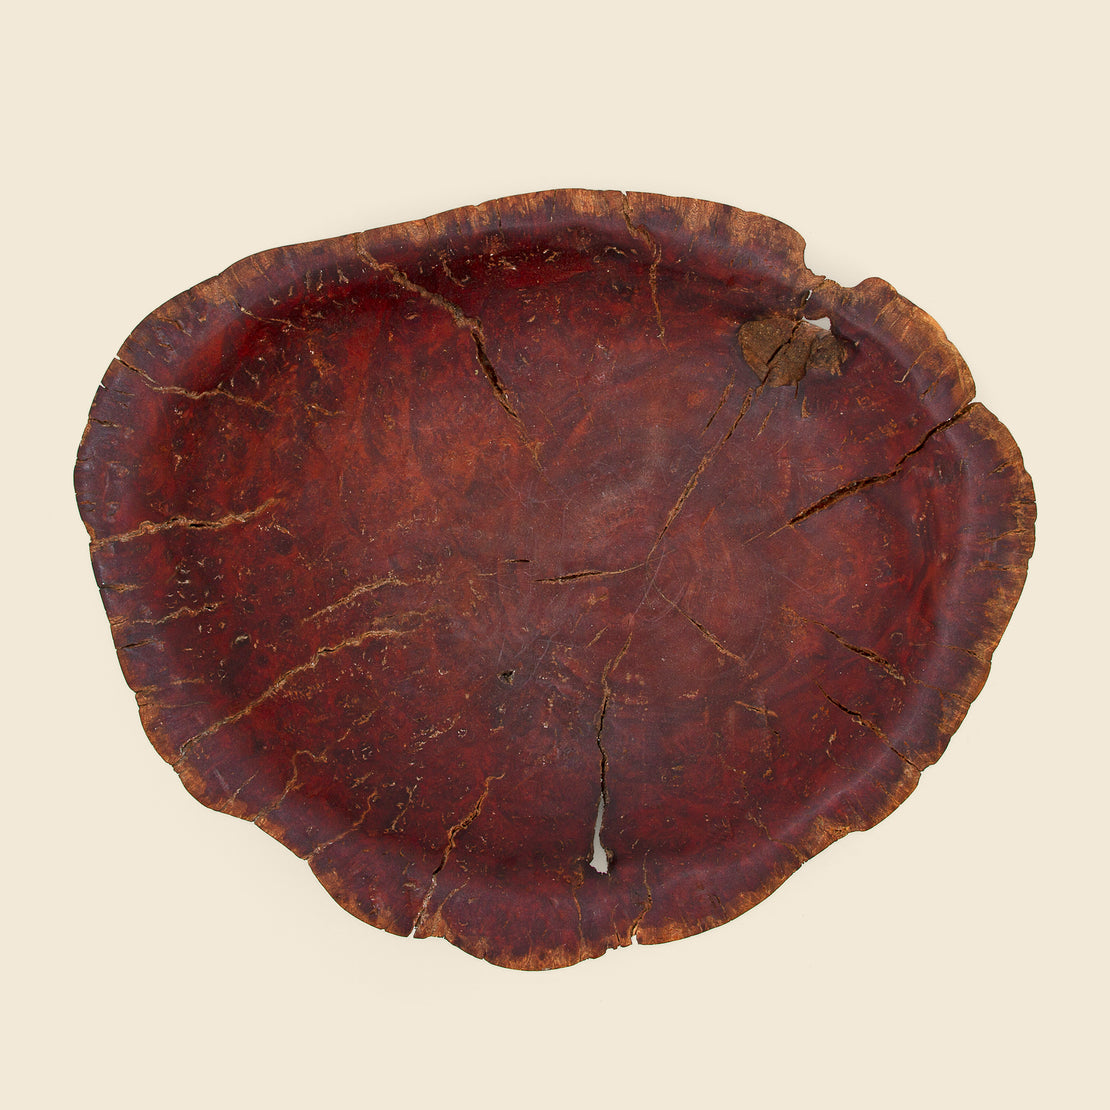 Natural Shallow Wooden Bowl